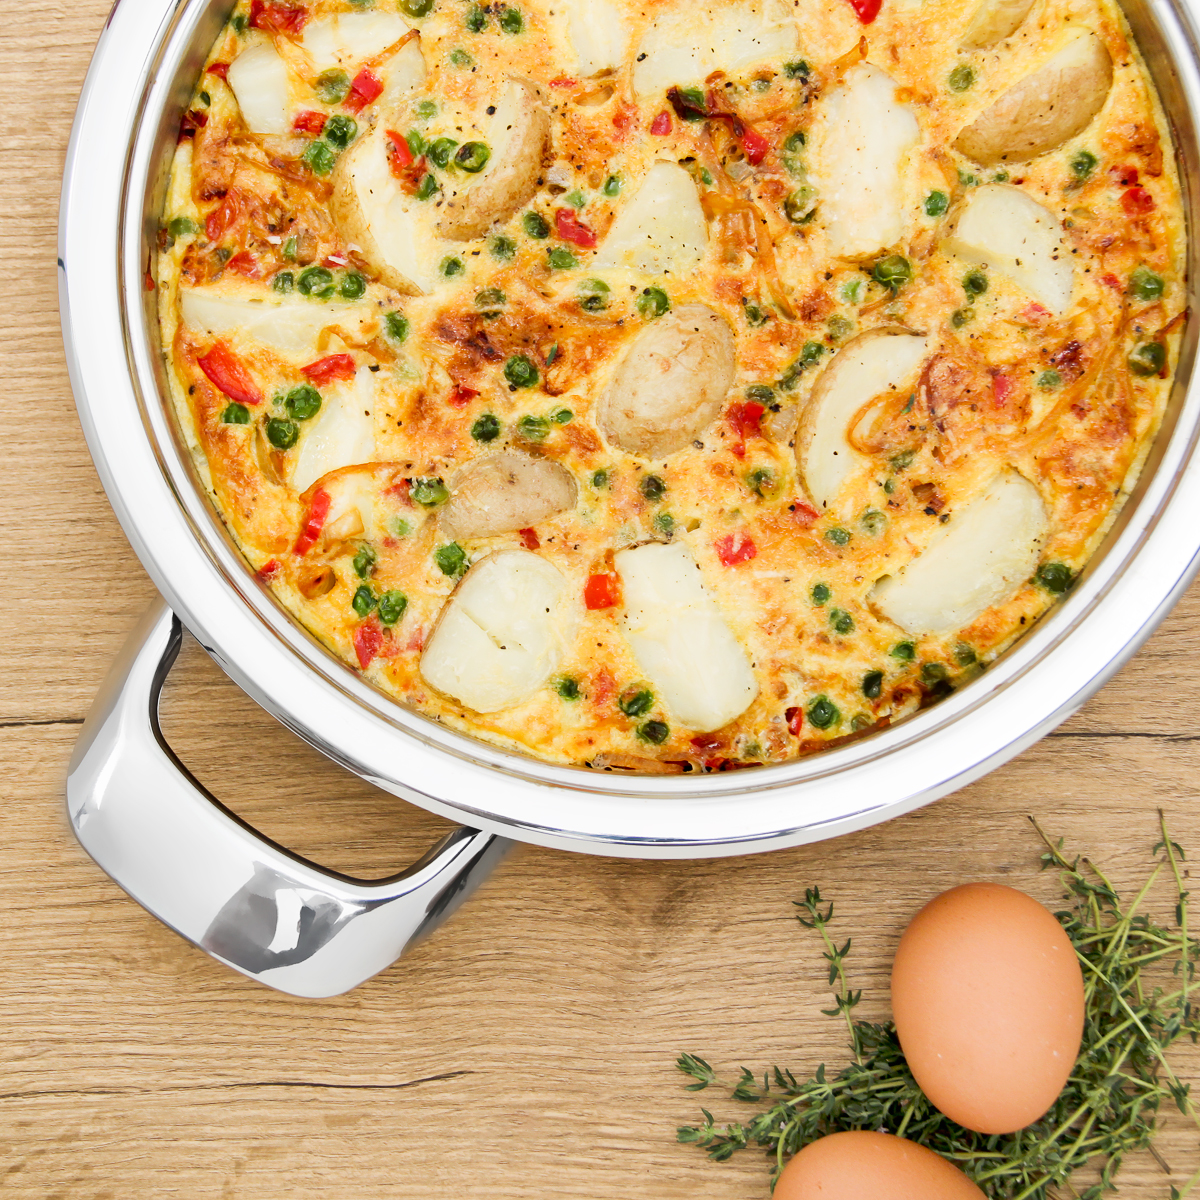 baby potato and parmesan frittata in AMC Synergy 24cm skillet